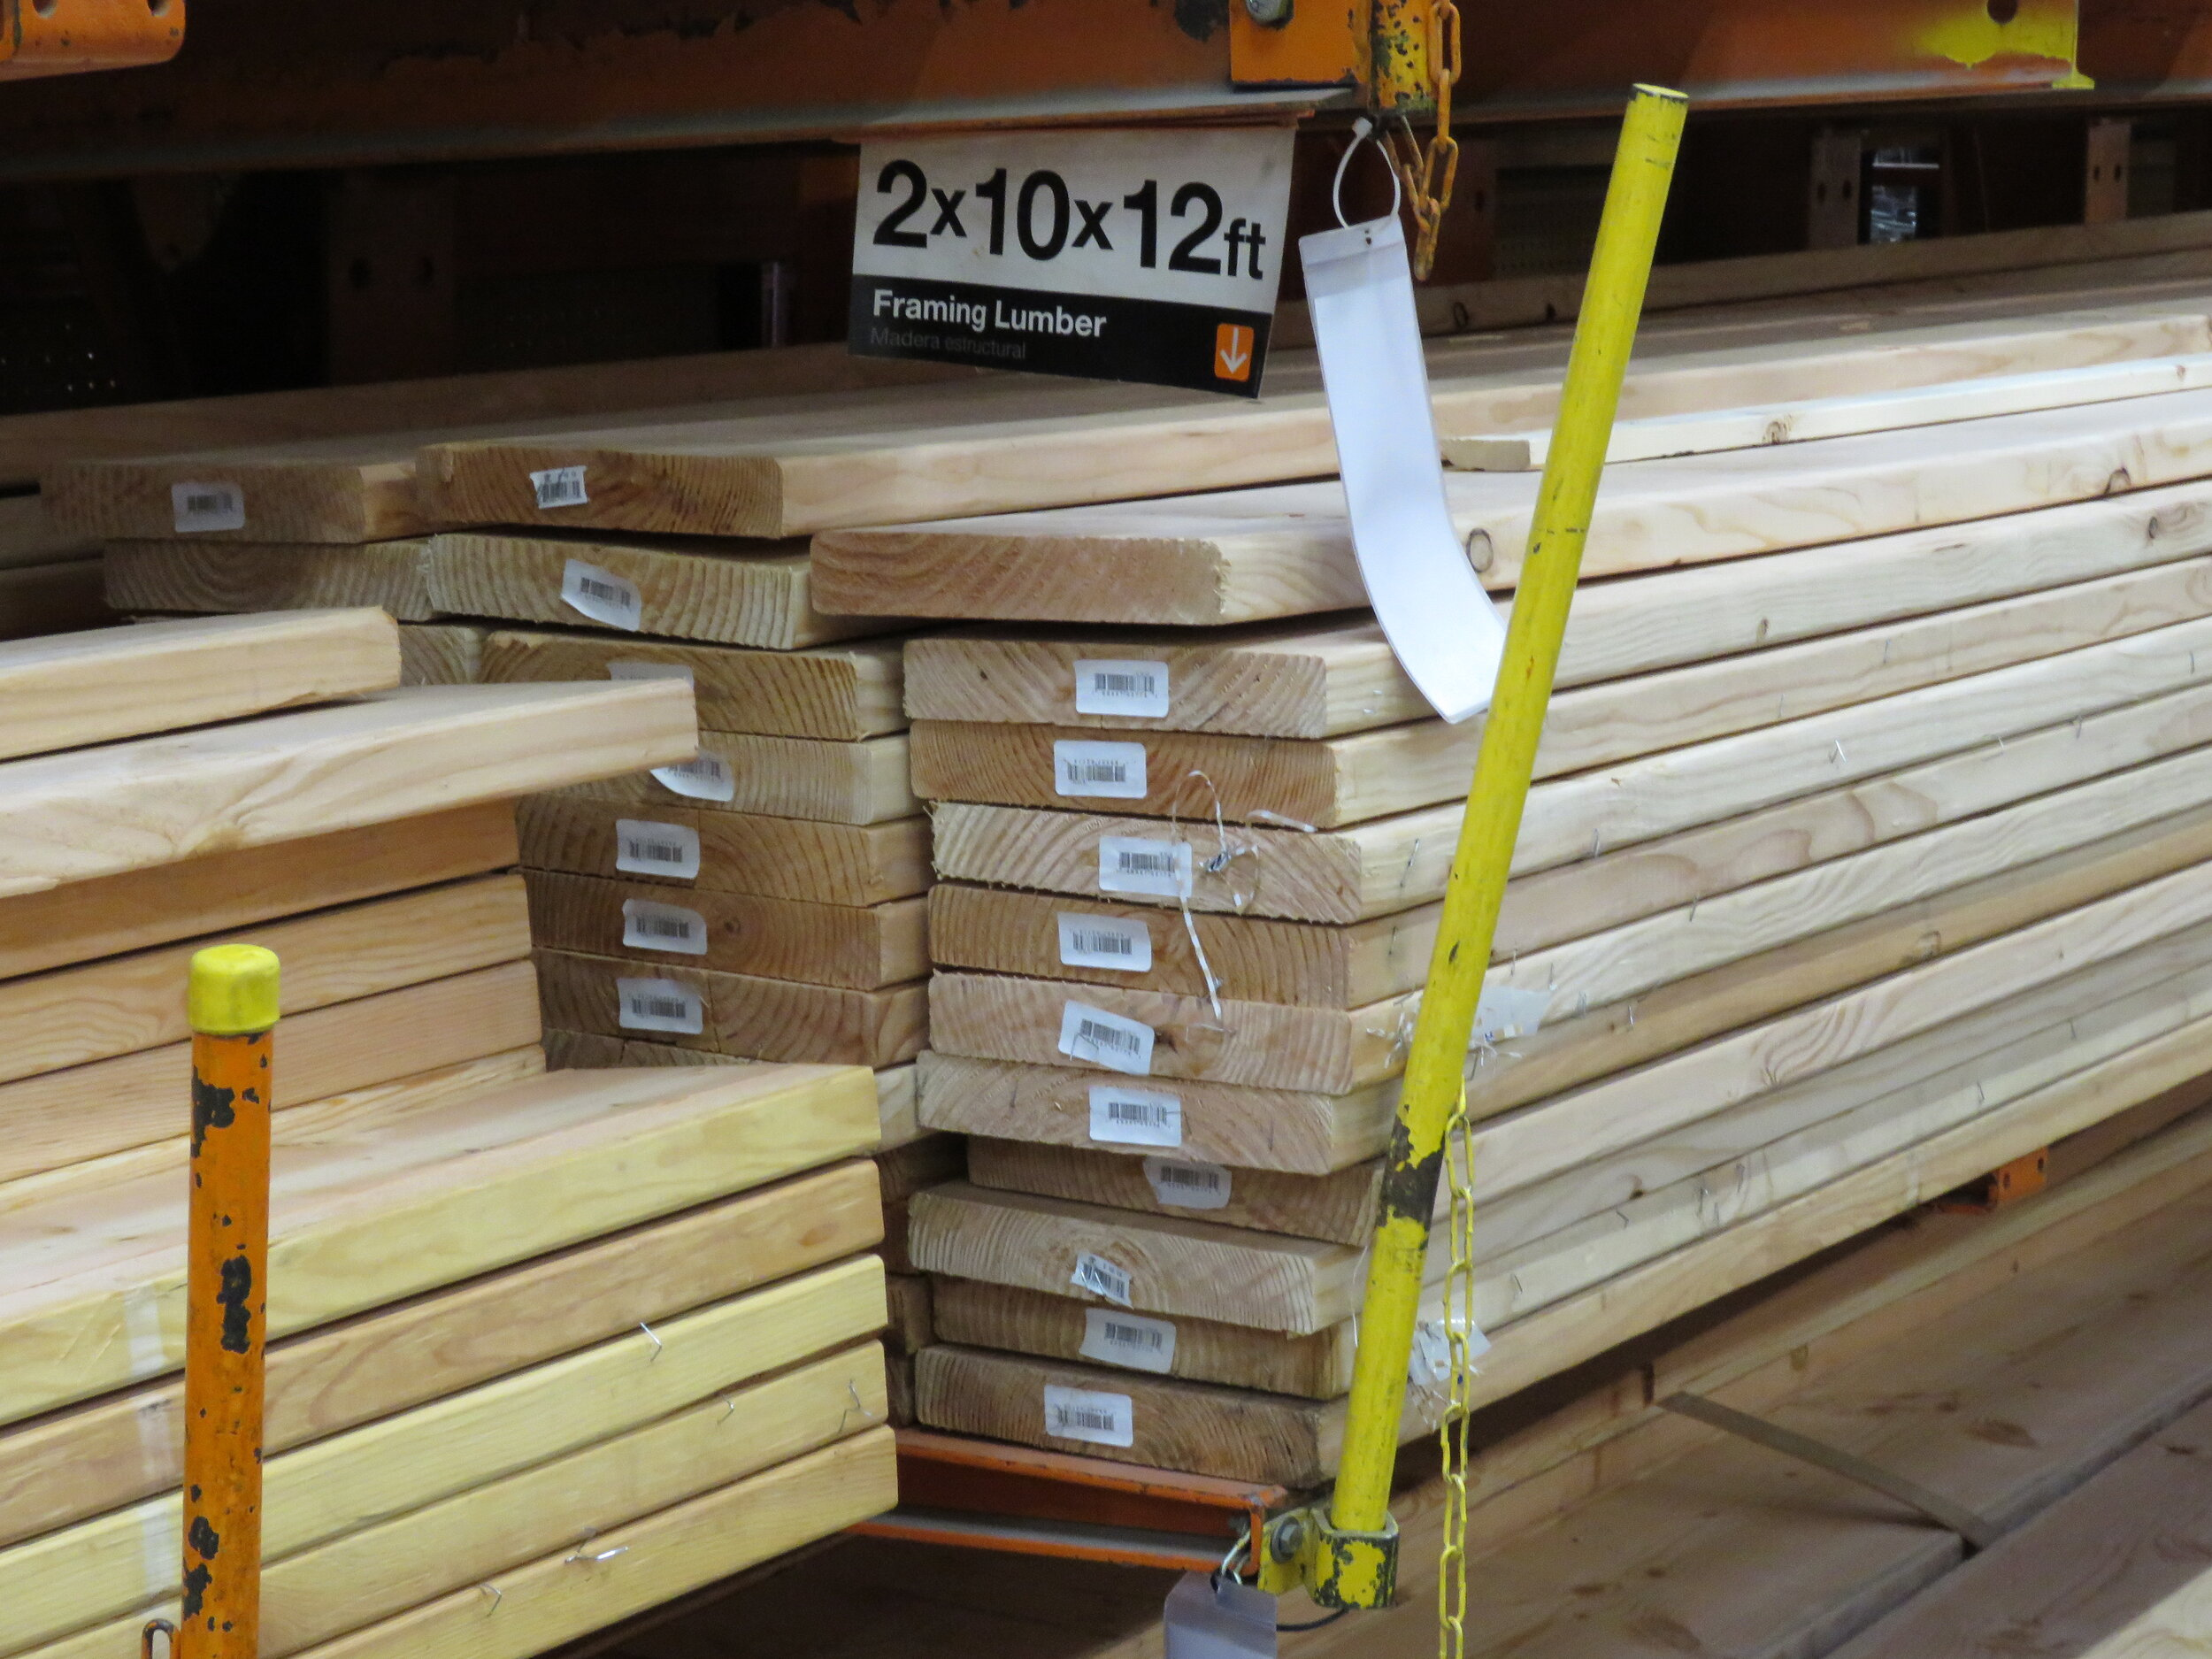 A stack of dimensional lumber.